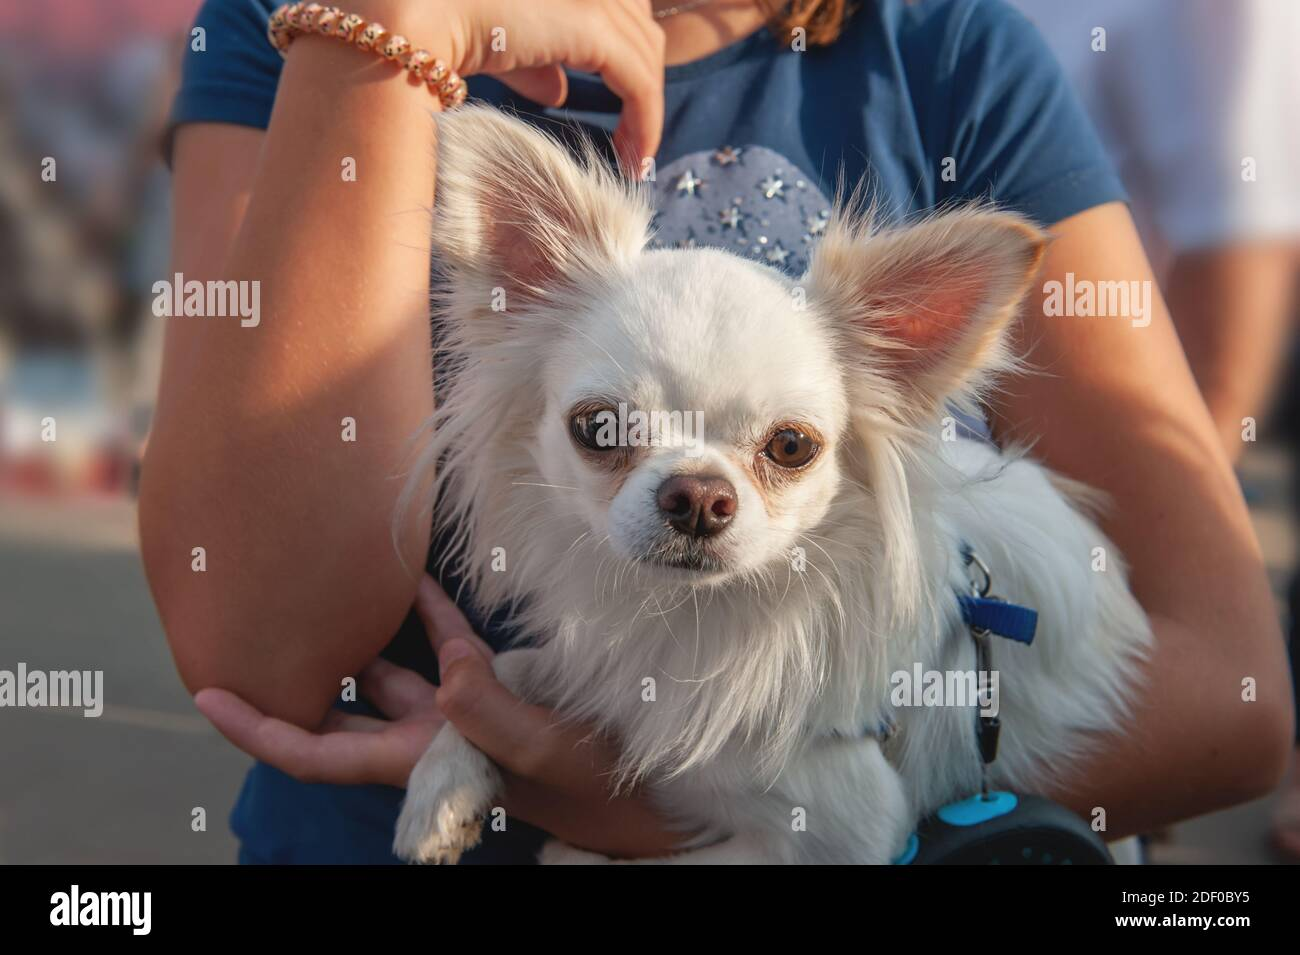 small Chihuahua puppy sits in the arms of the owner. Chihuahua is a breed of miniature indoor dogs. little White dog. Stock Photo